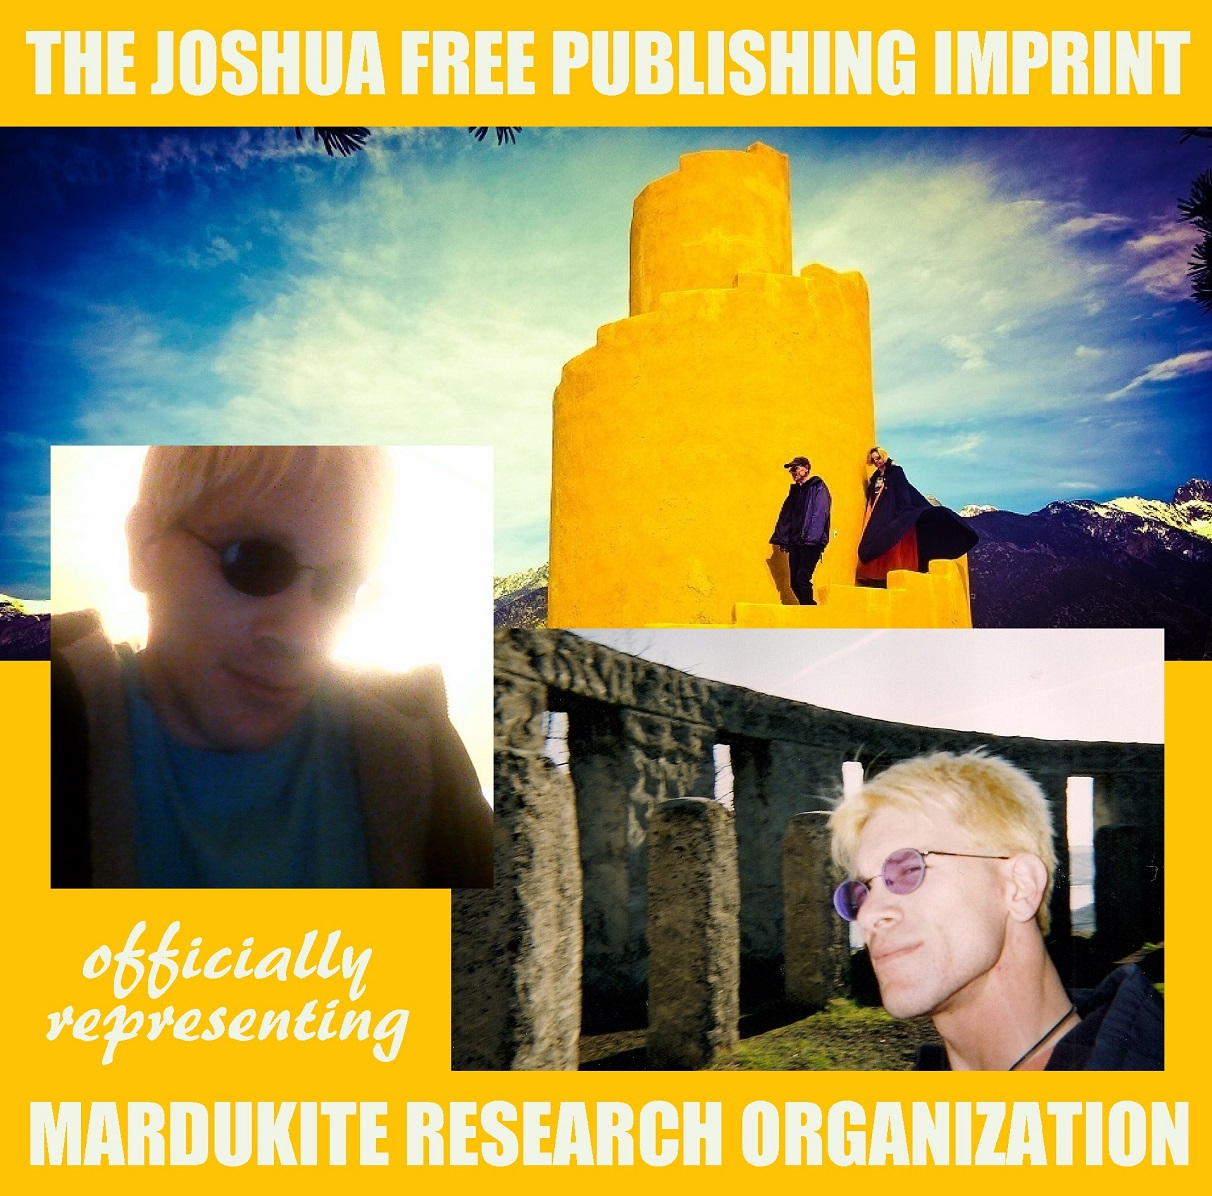 Joshua Free Publishing Imprint representing Mardukite Research Organization